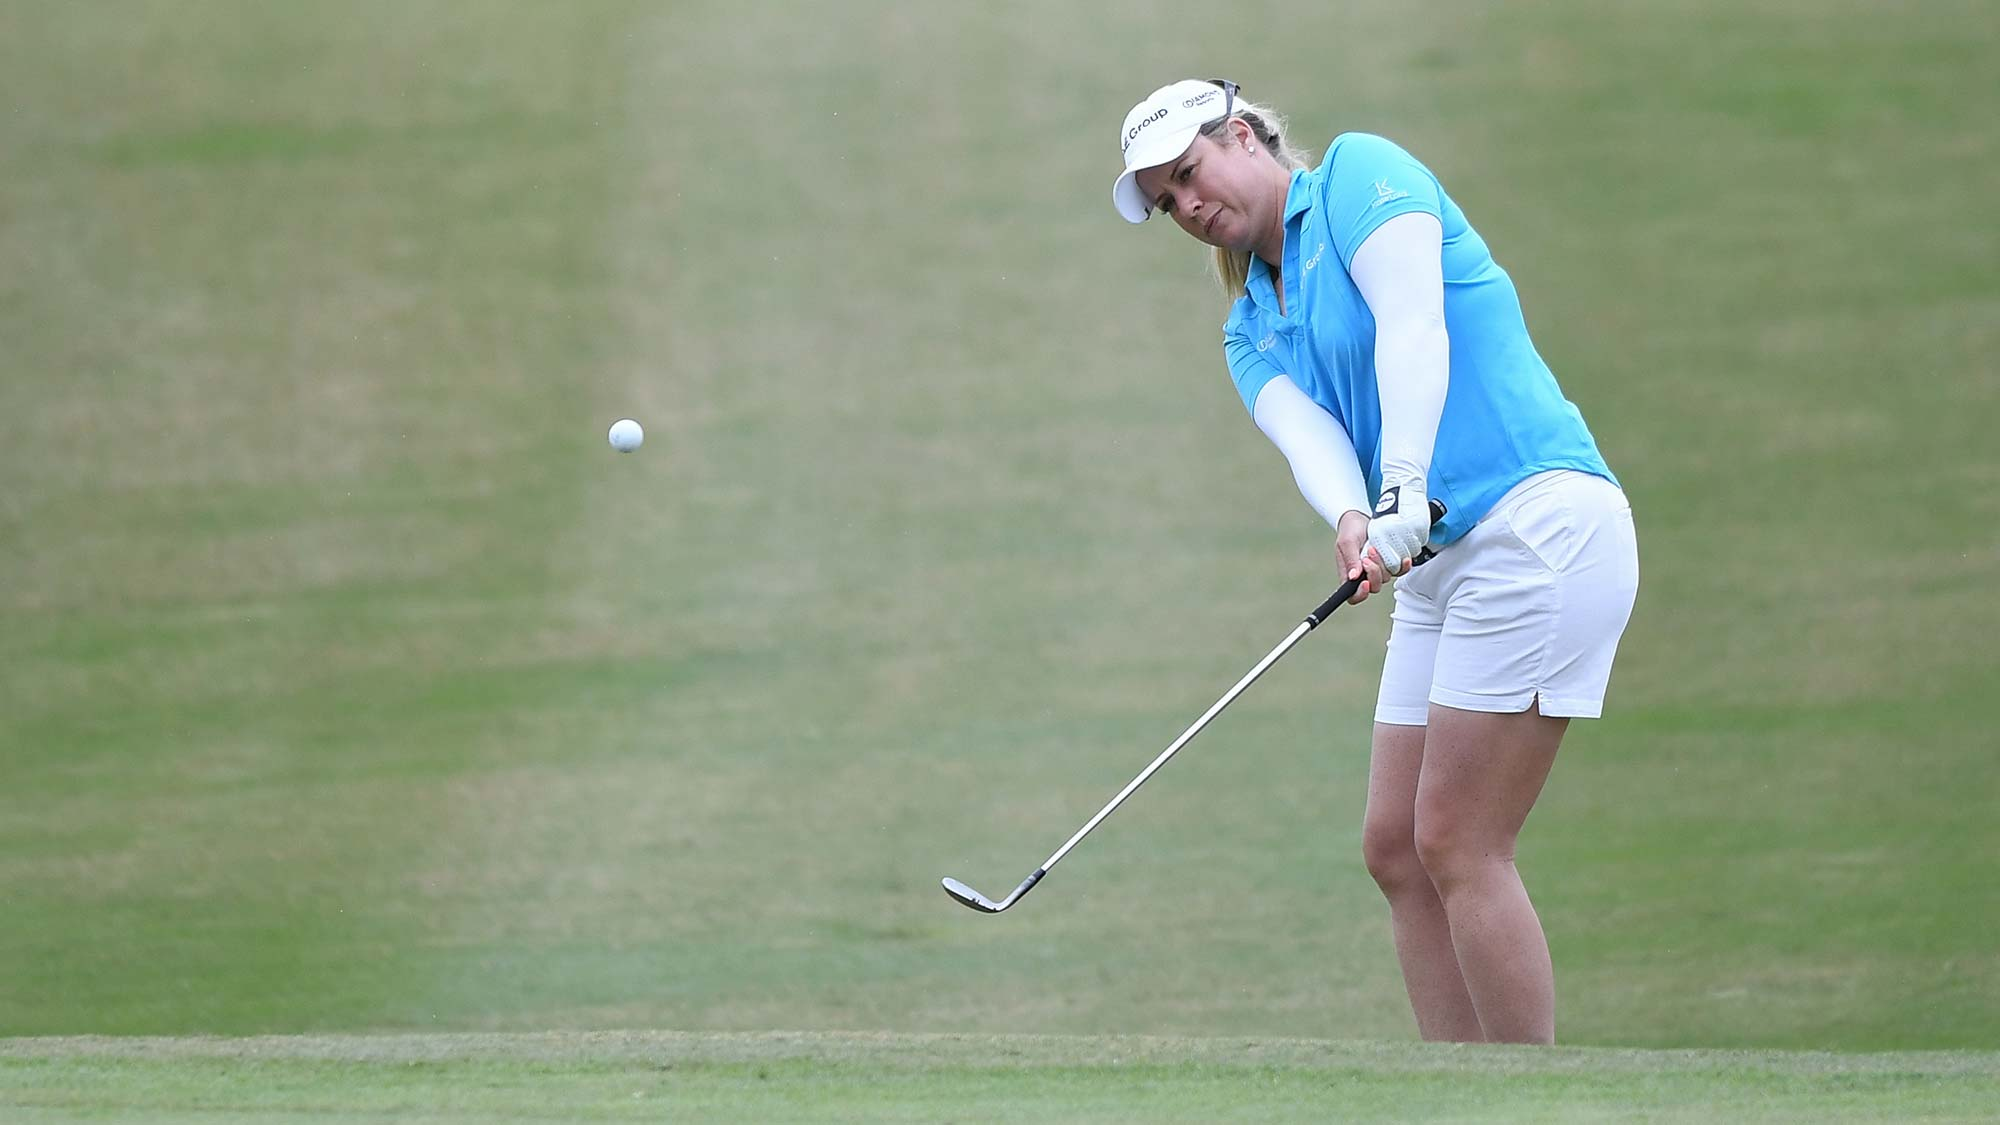 Brittany Lincicome of the United States plays a shot during the third round of the Buick LPGA Shanghai